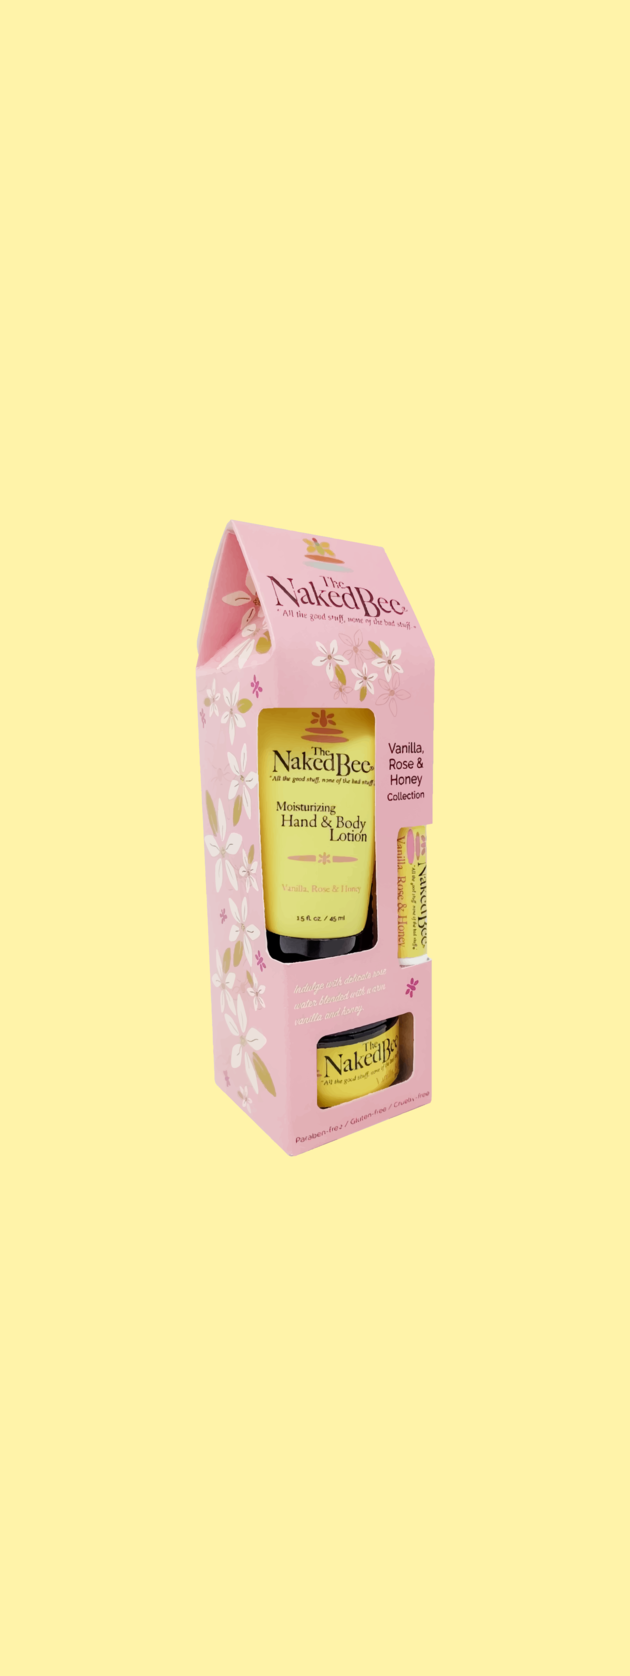 Naked Bee Vanilla Rose & Honey Gift Set